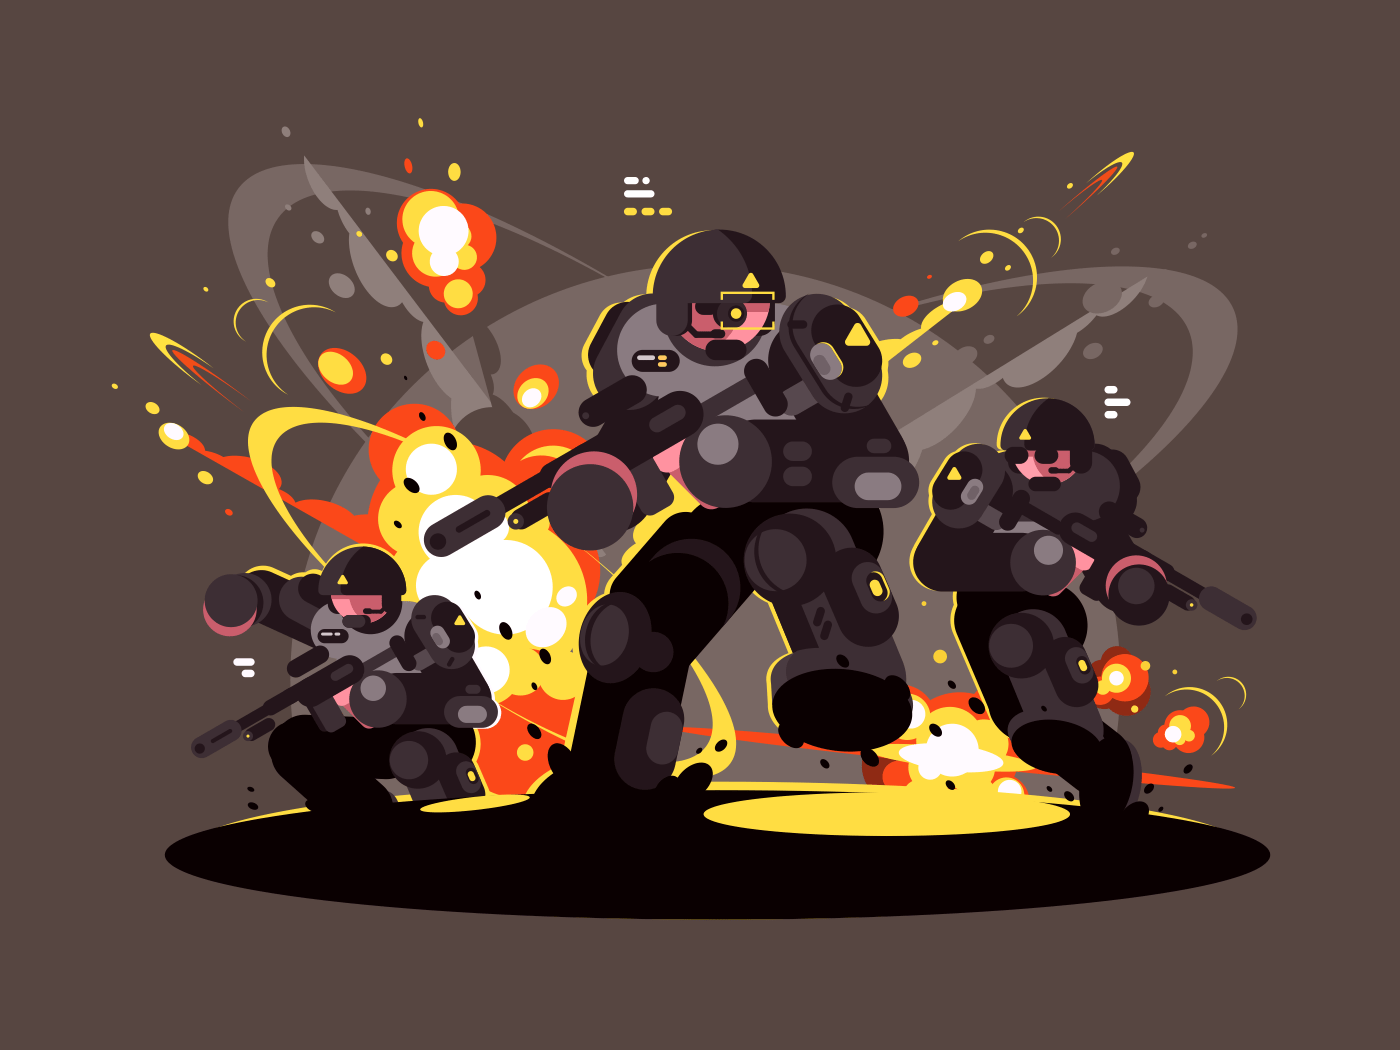 Military infantry soldiers in battle. Dangerous explosions and shots. Vector illustration